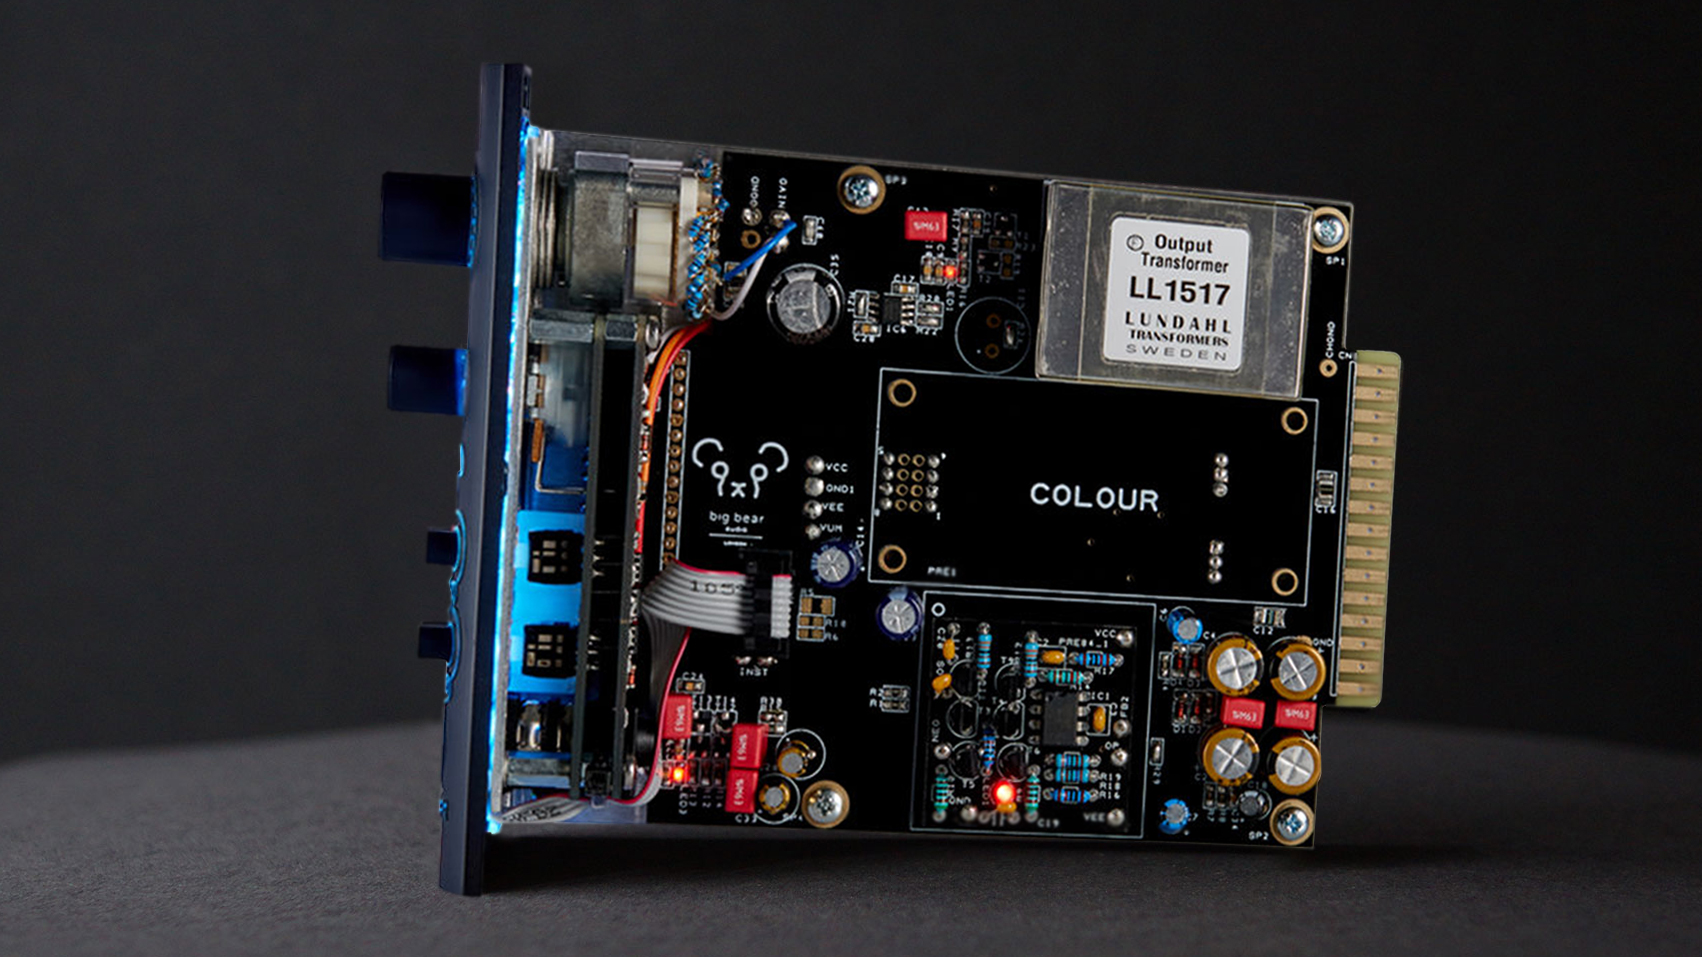 500 Series Guide To Effects Bh Explora Modular Audio Preamplifier Big Bear Mp1 Microphone With Interchangeable Colour Slot